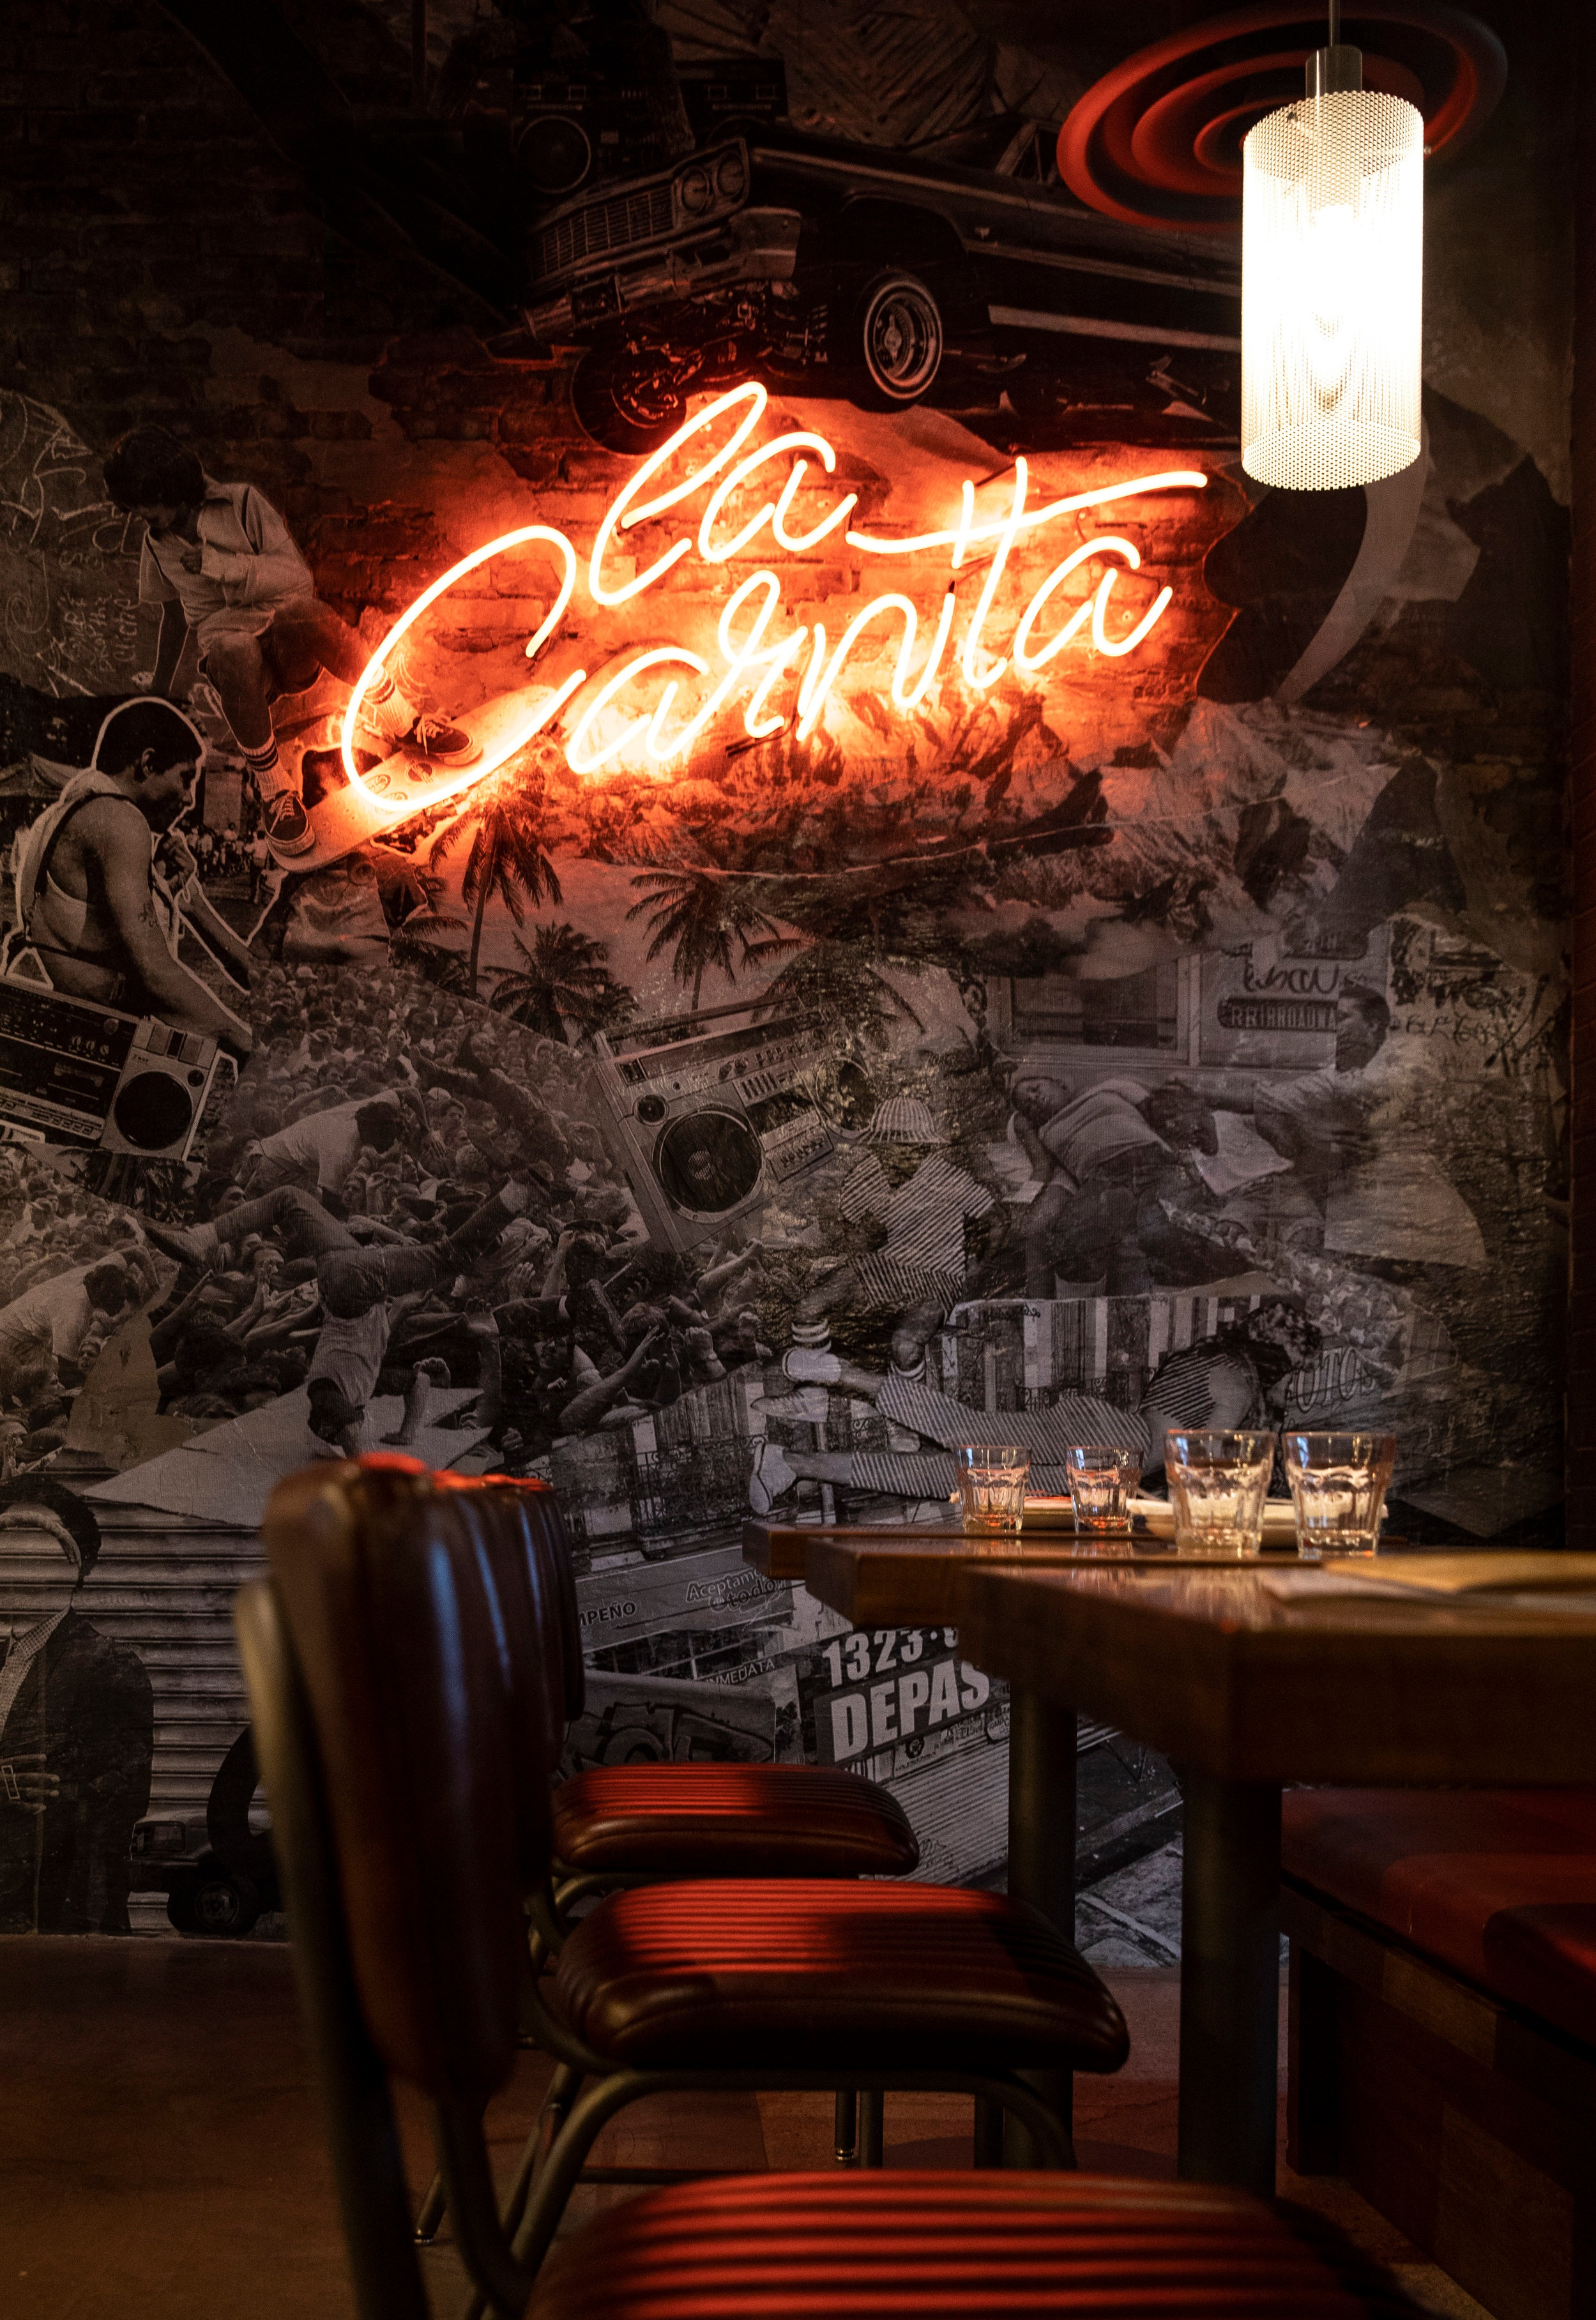 La Carnita SQ1,Toronto - Featuring one of our largest commissions to date, our studio designed and produced an ambitious artwork for the Monarch and Misfits restaurant group. The work is a multi media mobile that hangs from a 40ft ceiling above the main dining room. Alongside our custom mobile, we have curated a mix of accessories and a unique plant wall that features prominently in the newest La Carnita location.